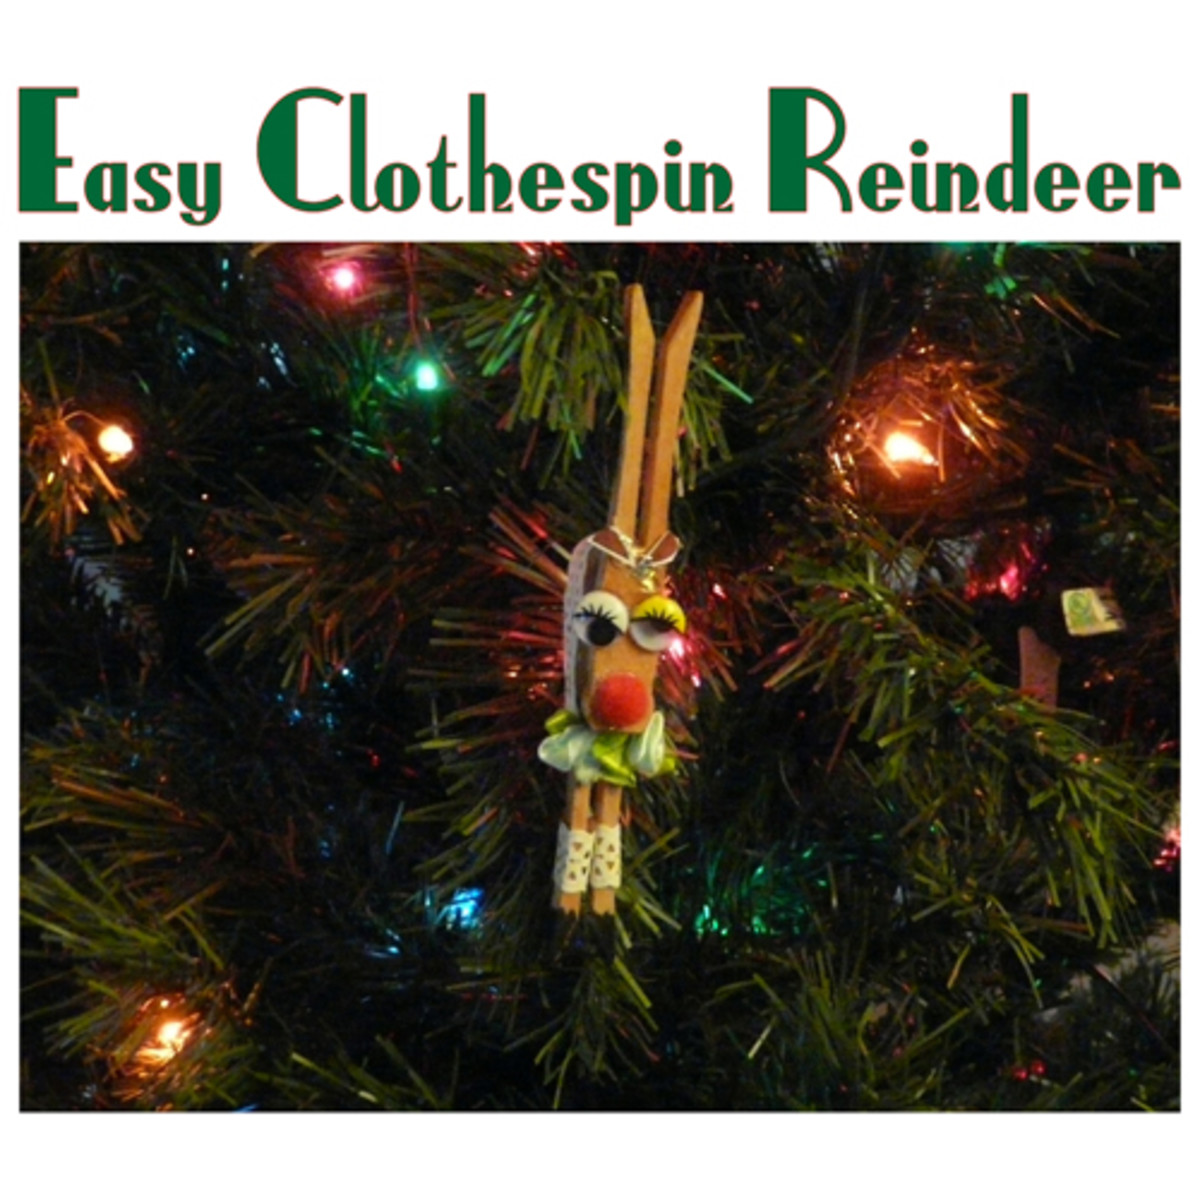 Easy Clothespin Reindeer Ornaments: A Christmas Craft to Do With Kids